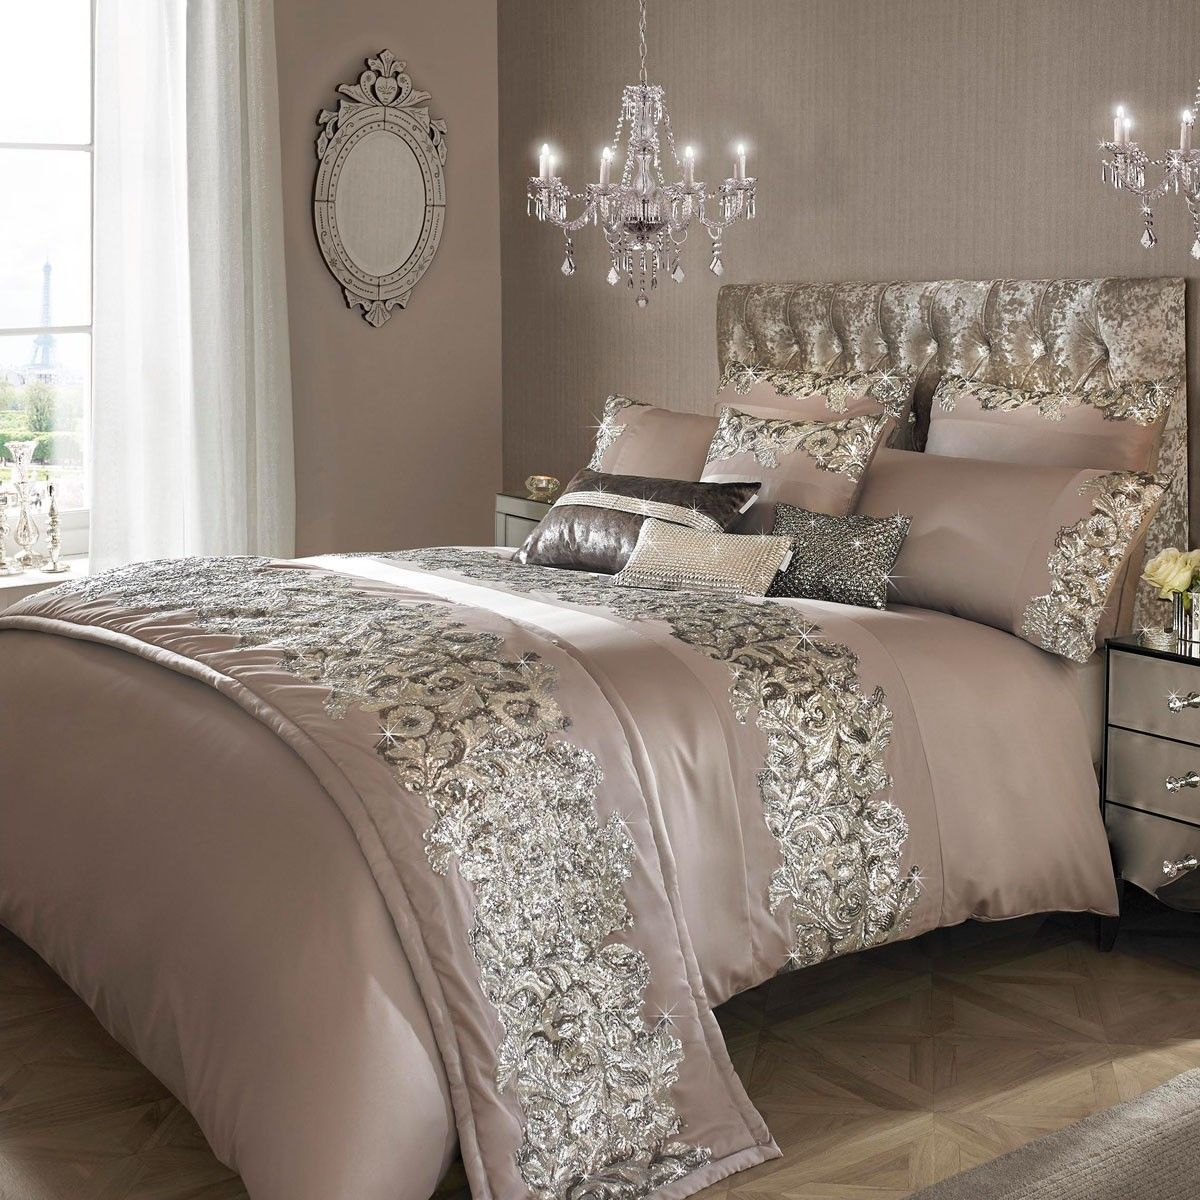 Kylie Minogue Petra Nude Bedding Collection New Bedroom Pinterest Sovrum, Vackra sovrum